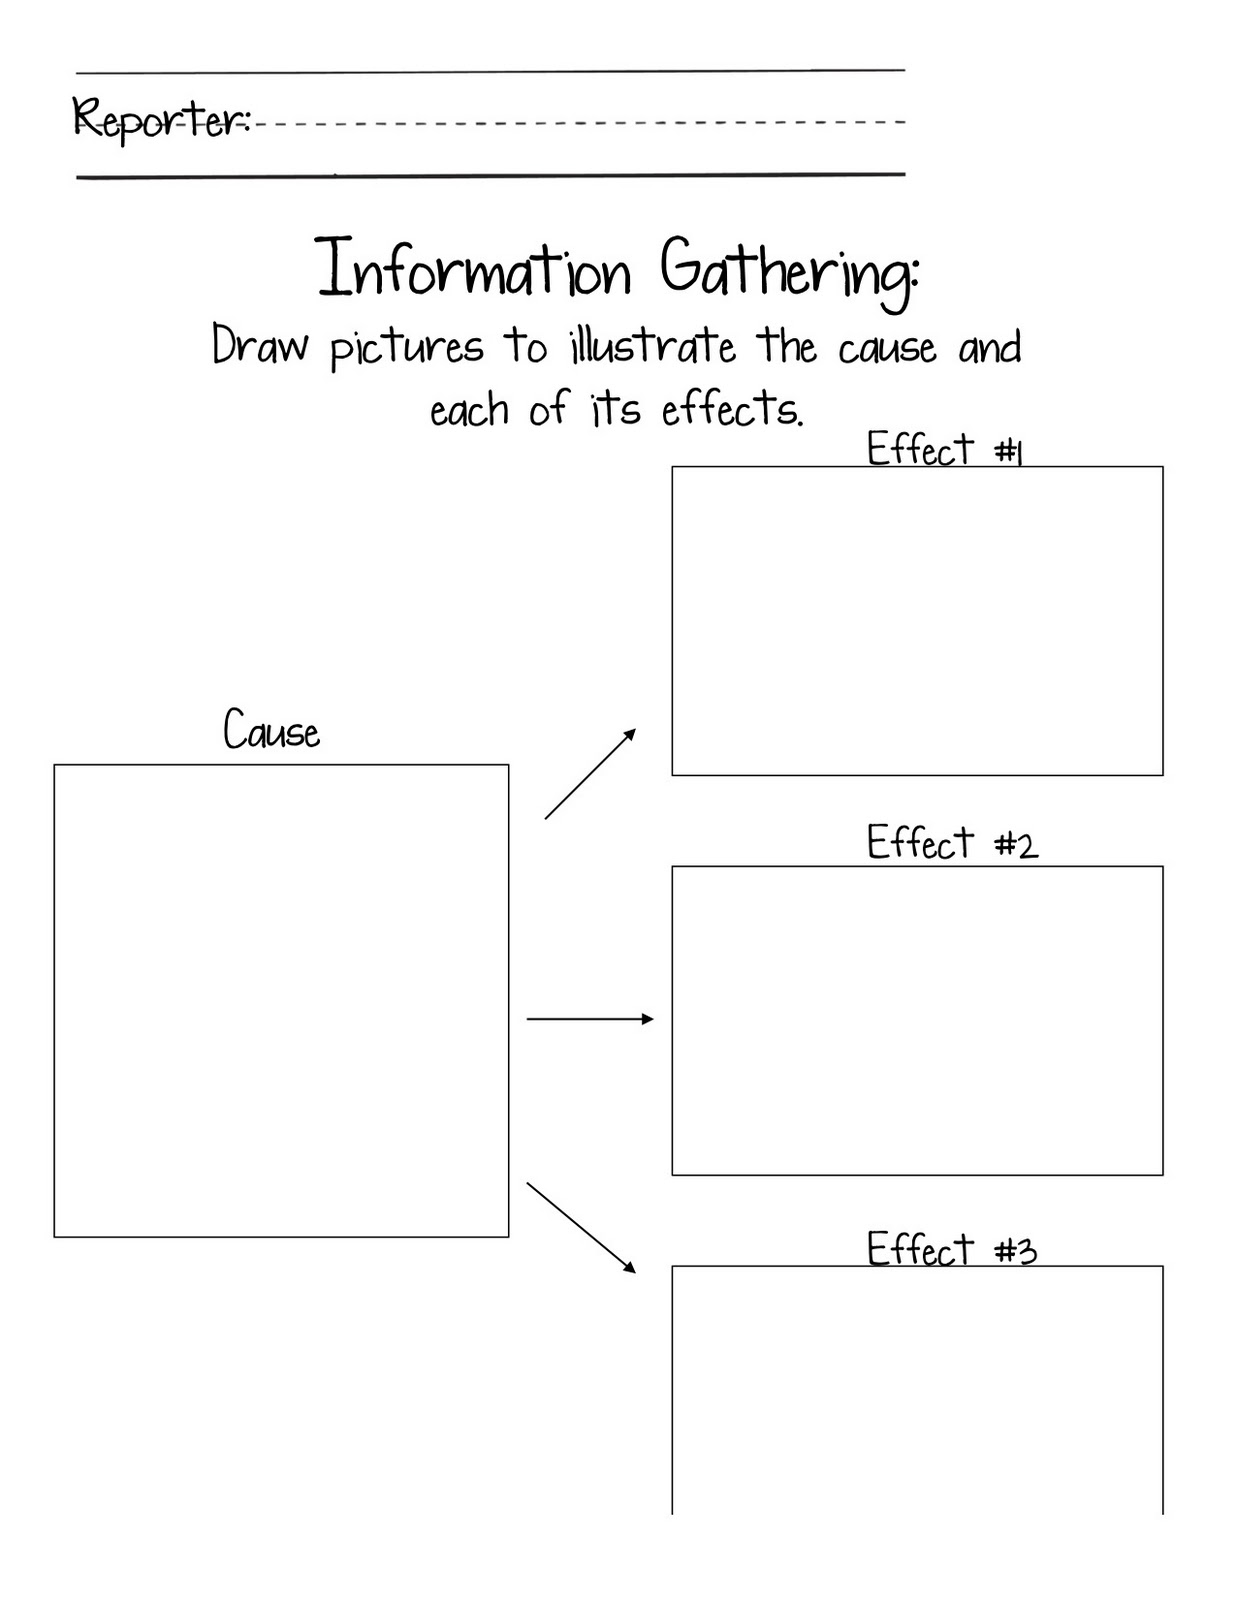 expository writing graphic organizers We offer a collection of pre-formatted graphic organizers that you can integrate into activities and lesson plans or use by themselves  good for organizing information gained from reading textbooks or expository materials  concepts, and character traits useful as a pre-writing activity download: w's organizer: helps with organizing.